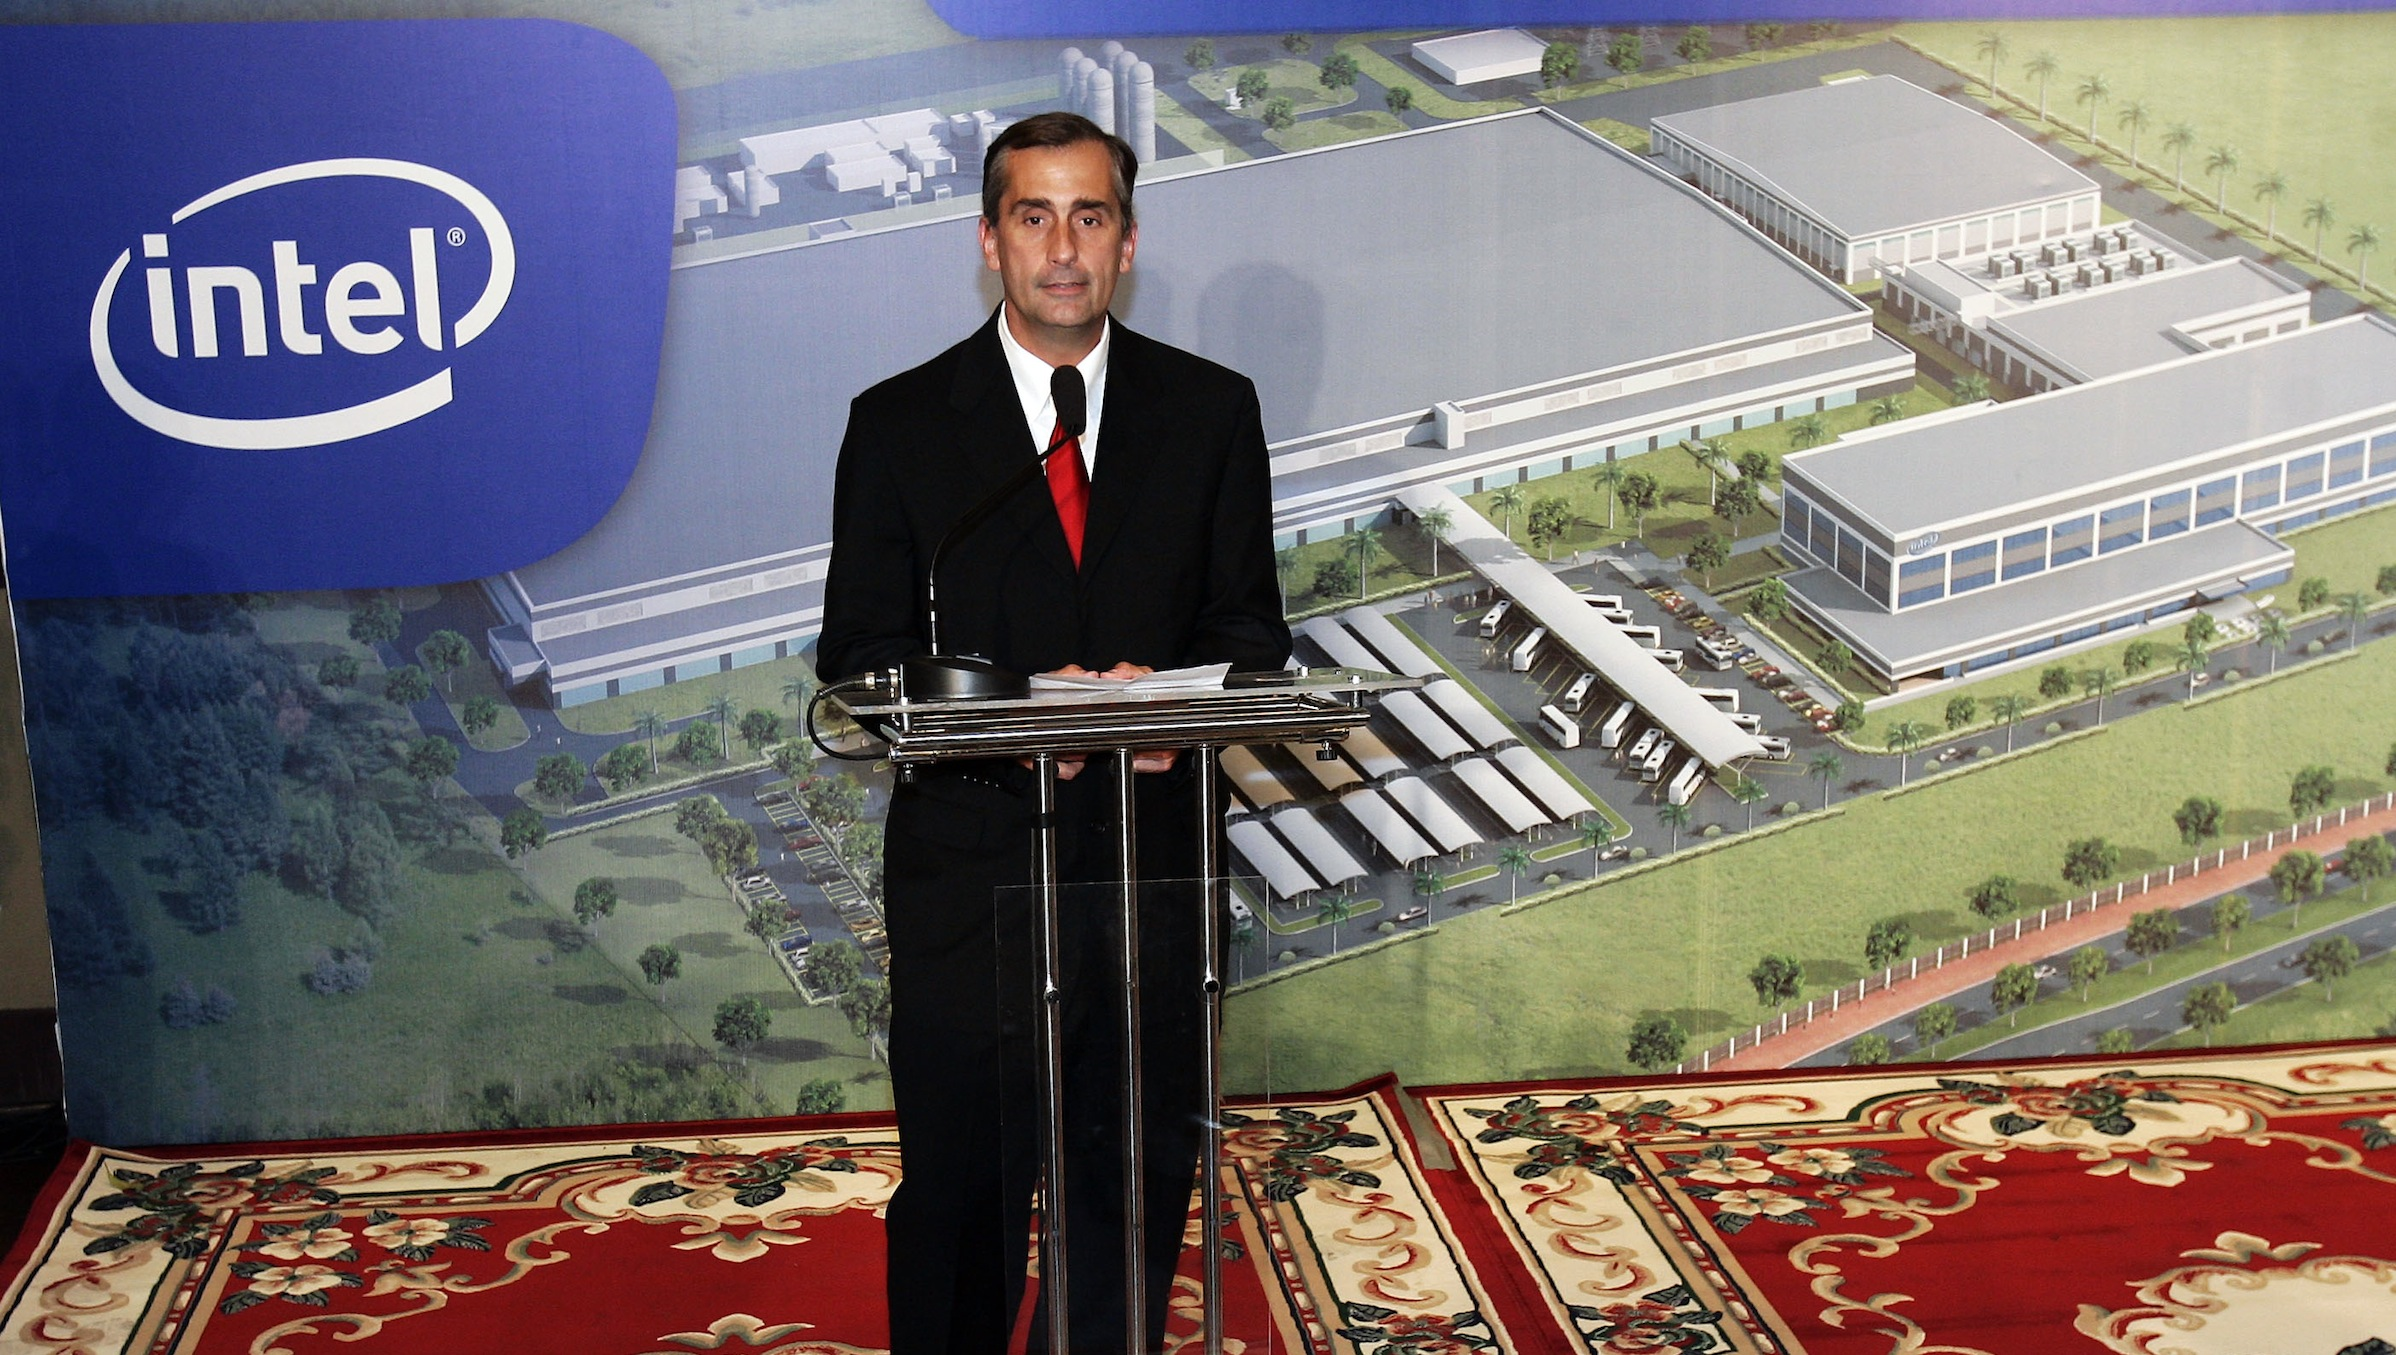 Brian Krzanich, Vice President and General Manager of Assembly/Test for Intel Corporation addresses the media during a news conference, Friday, Nov. 10. 2006, in Ho Chi Minh City, Vietnam. Intel Corp. could have selected any country to build its largest chip assembly and testing plant. But the world's biggest computer chipmaker decided to make the $1 billion investment in a relative newcomer to the high-tech game, Vietnam.  (AP Photo/David Longstreath)